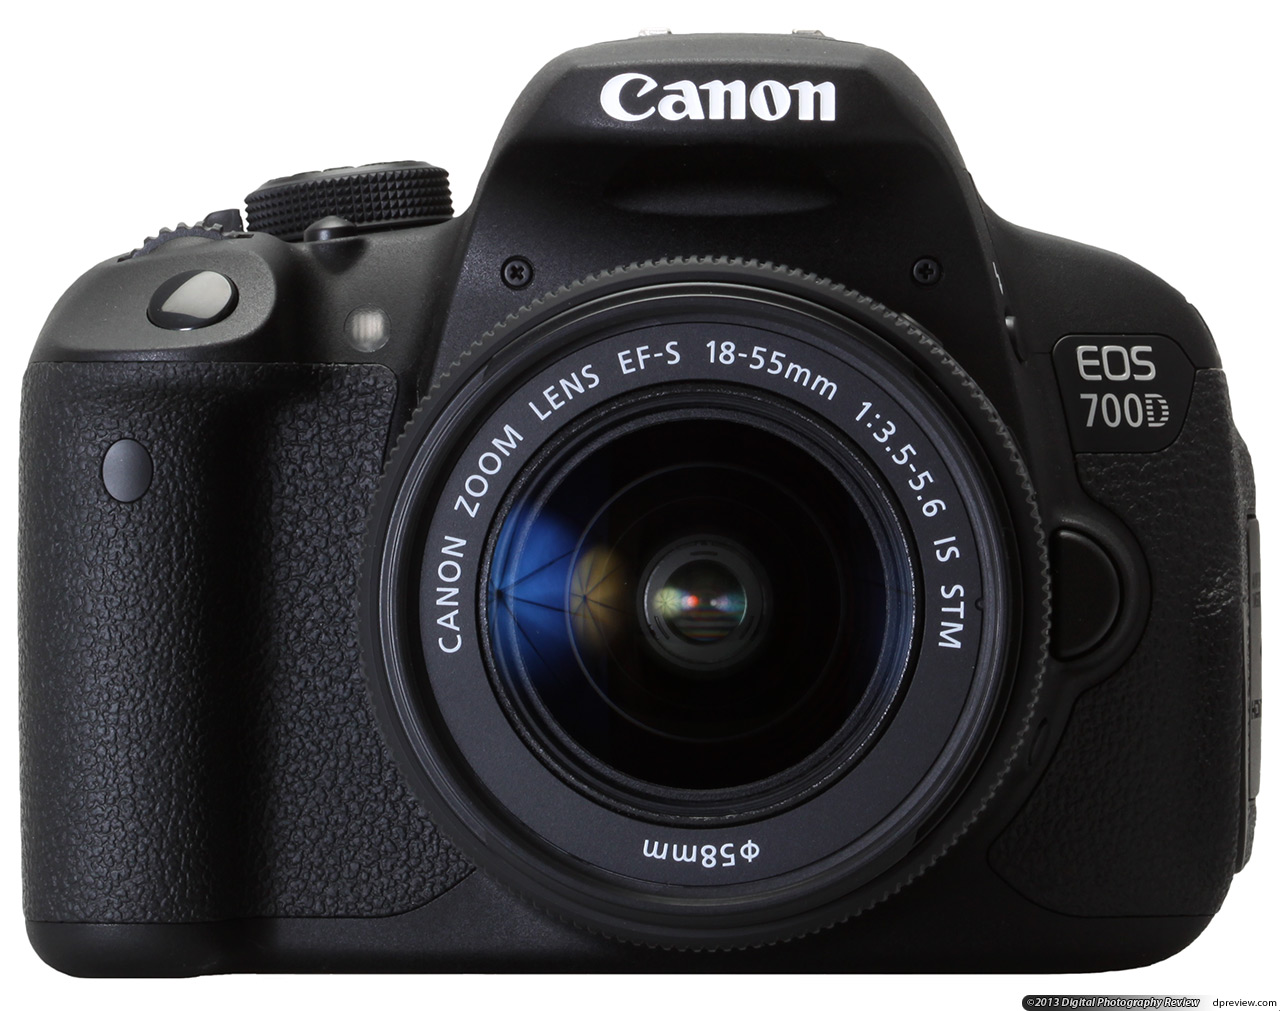 Canon EOS 700D/Rebel T5i In-Depth Review: Digital